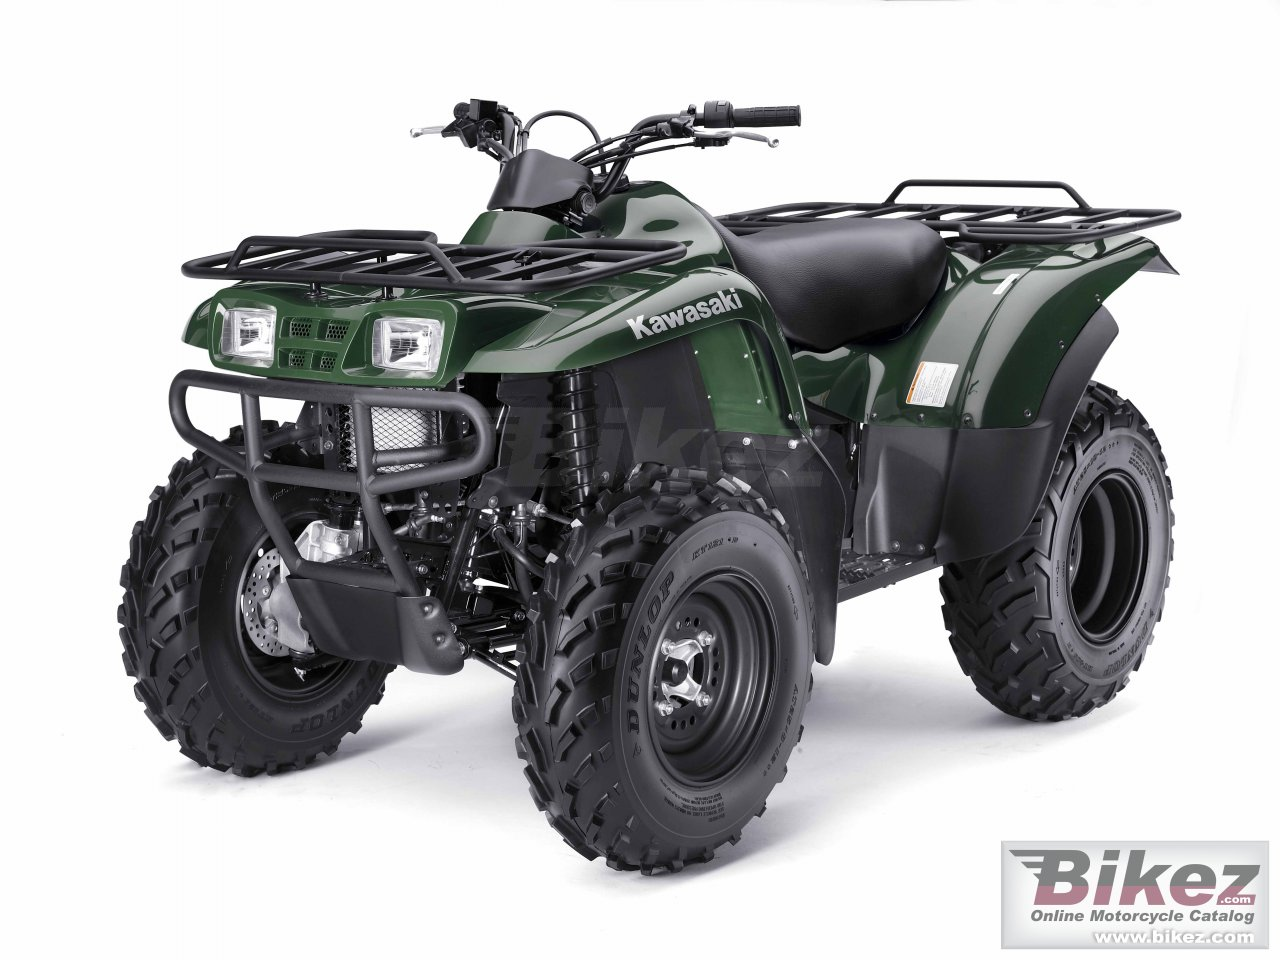 Big Kawasaki prairie 360 picture and wallpaper from Bikez.com